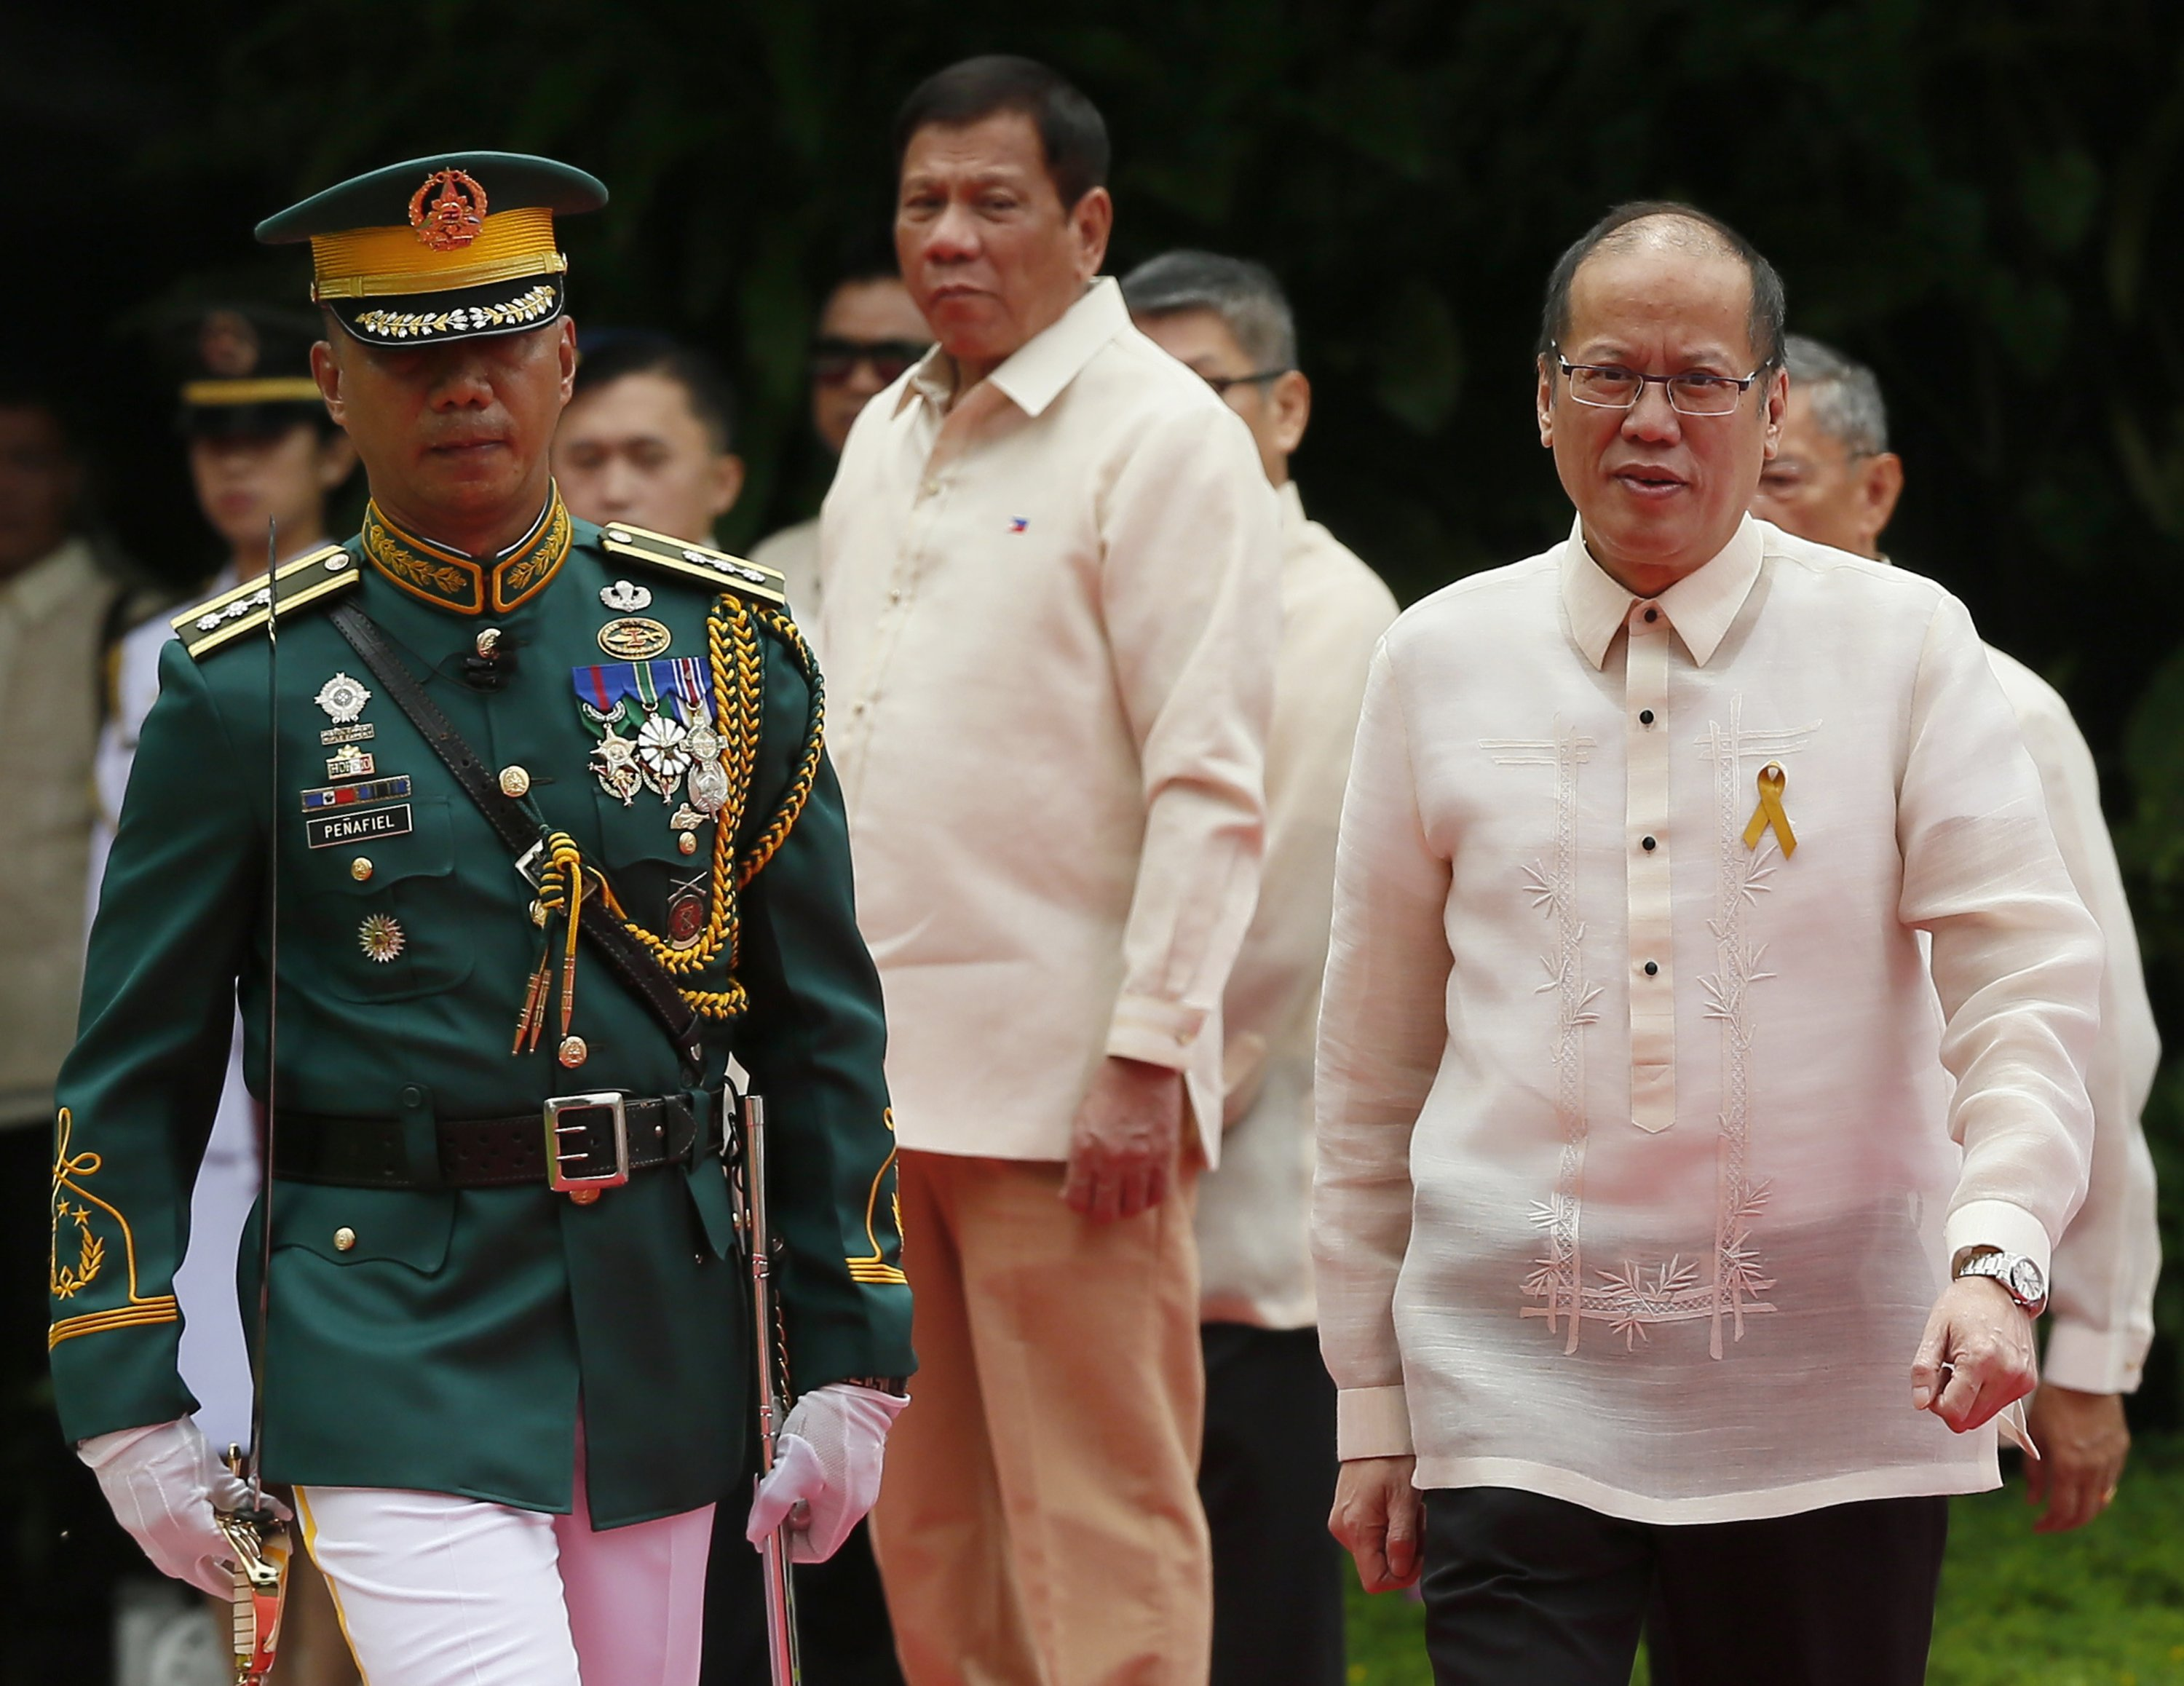 In this June 30, 2016, file photo, then outgoing President Benigno Aquino III (R) reviews the troops as new Philippine President Rodrigo Duterte (C) looks on during the inauguration ceremony, on the Malacanang Palace grounds in Manila, Philippines. (AP Photo)